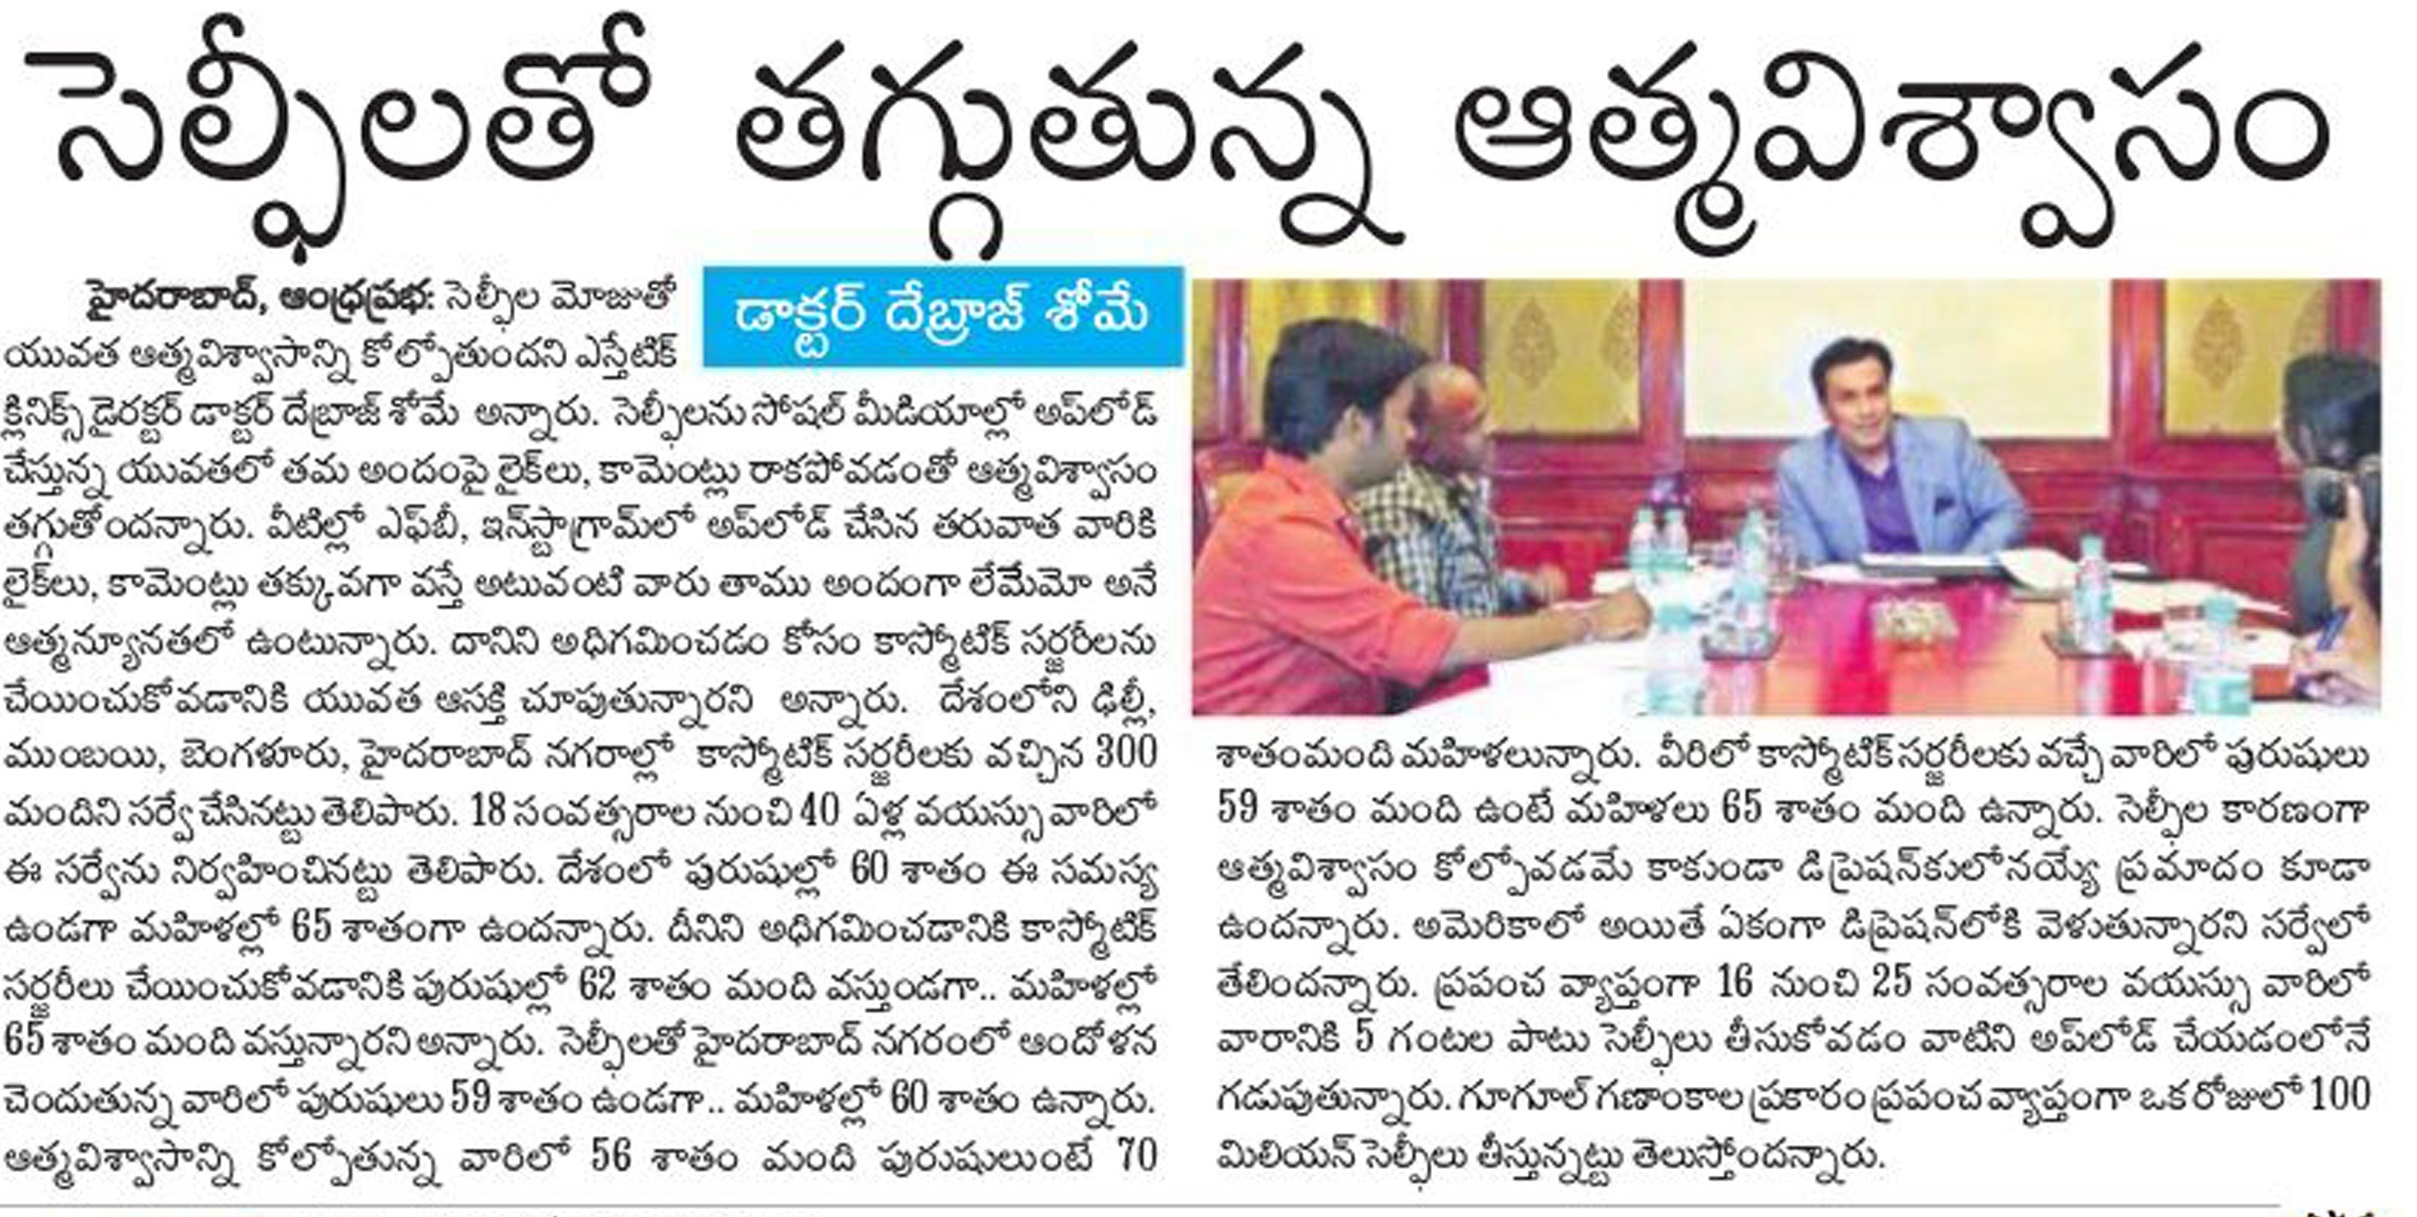 Selfie addiction leading towards cosmetic surgery - Andhra Prabha